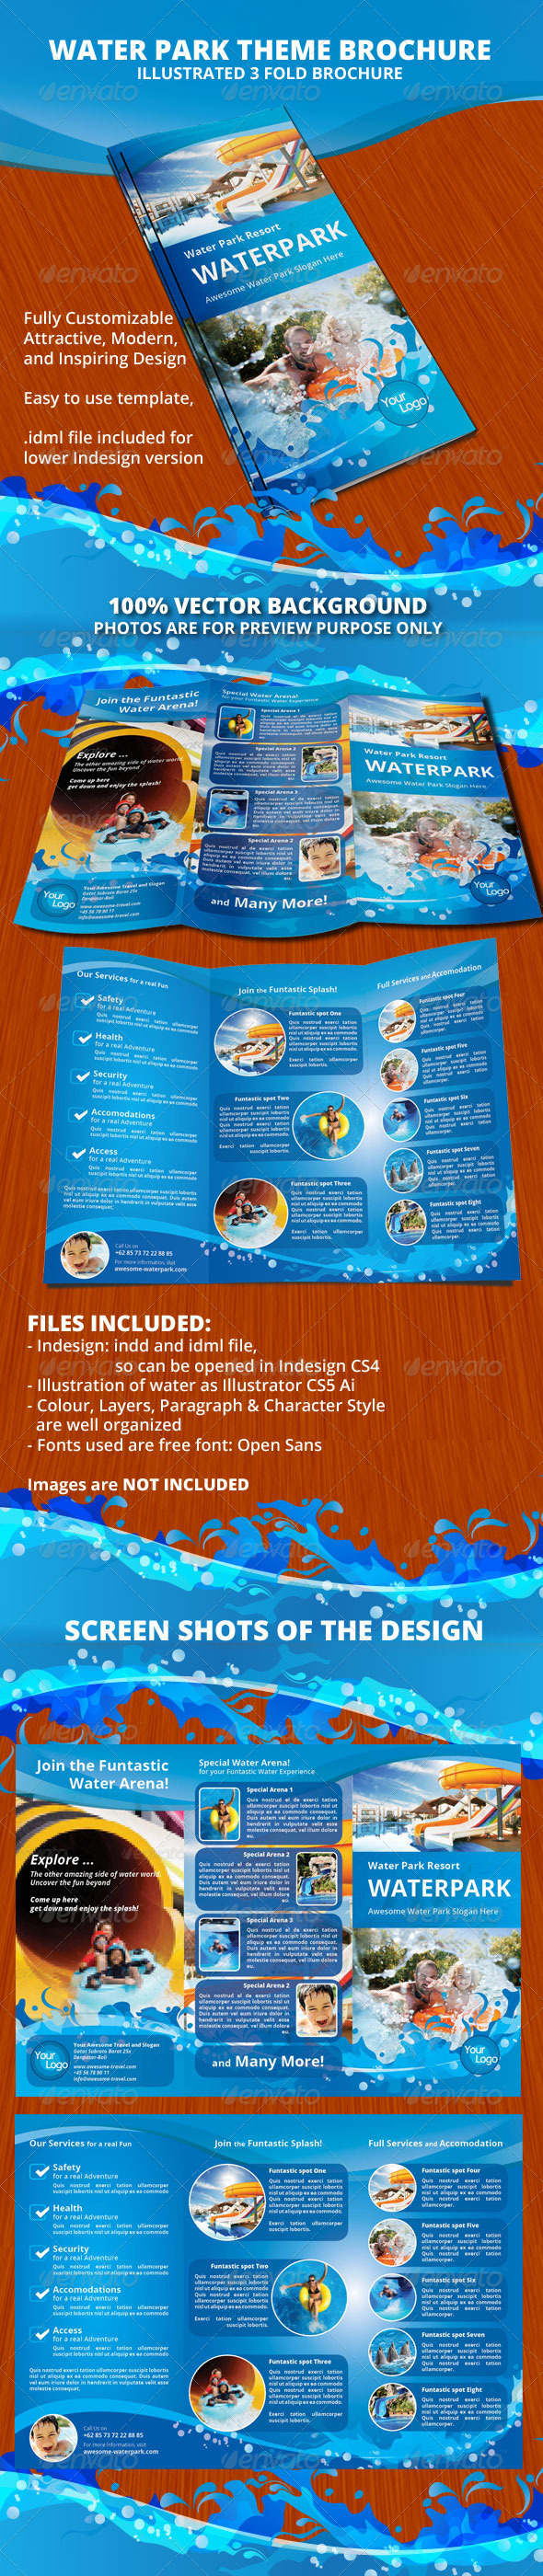 GraphicRiver Water Park Theme Trifold Brochure 8494712